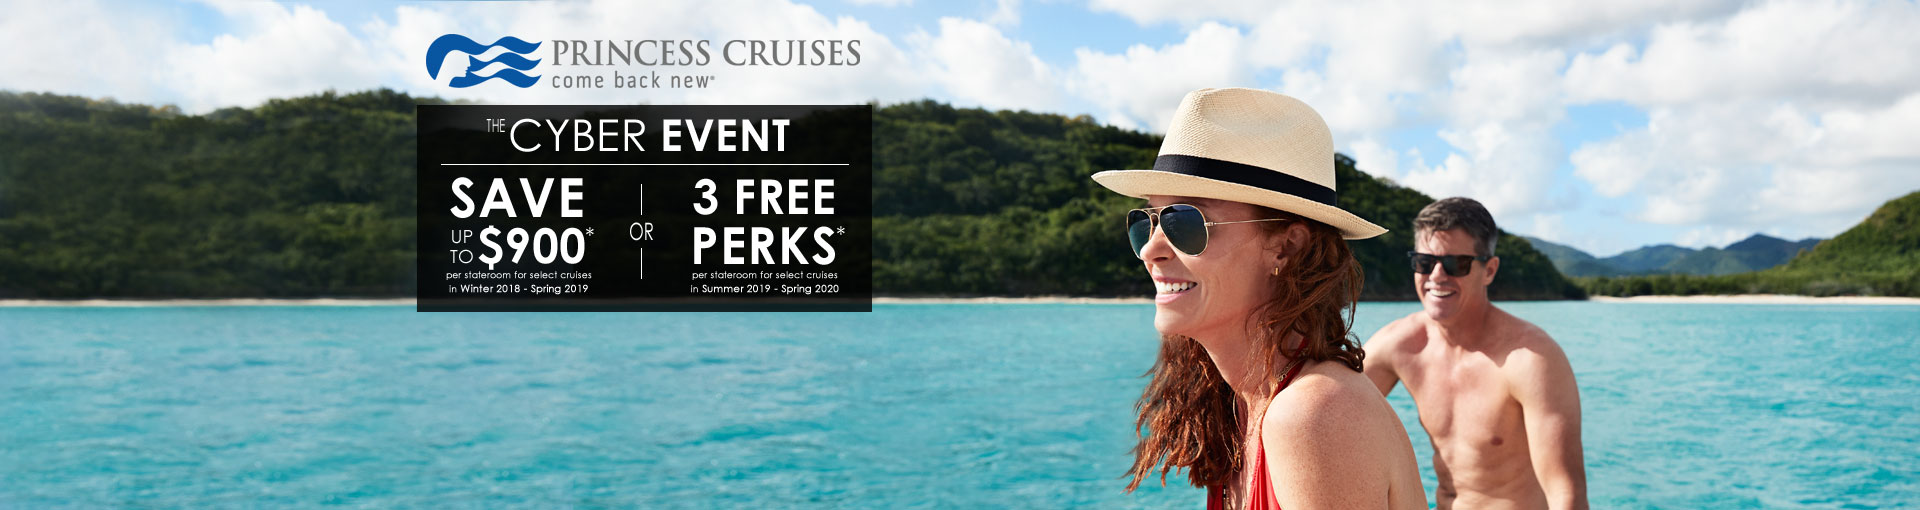 Princess Cruises - Cyber Event Cruise Sale